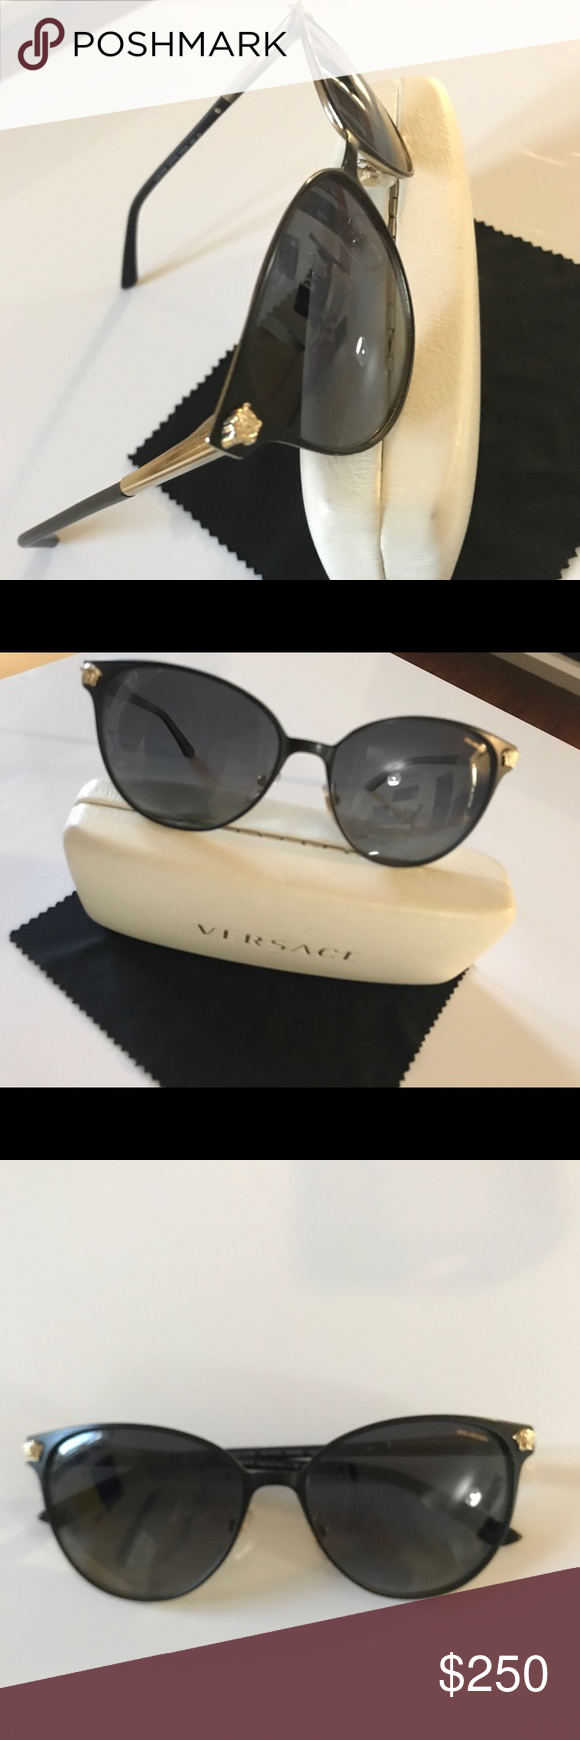 90caedcb44 Black Gold · Lens · Cleaning · Italy · Versace medusa 2168 polarized   black gold Authentic VERSACE Medusa sunglasses Mod  2168. Made in